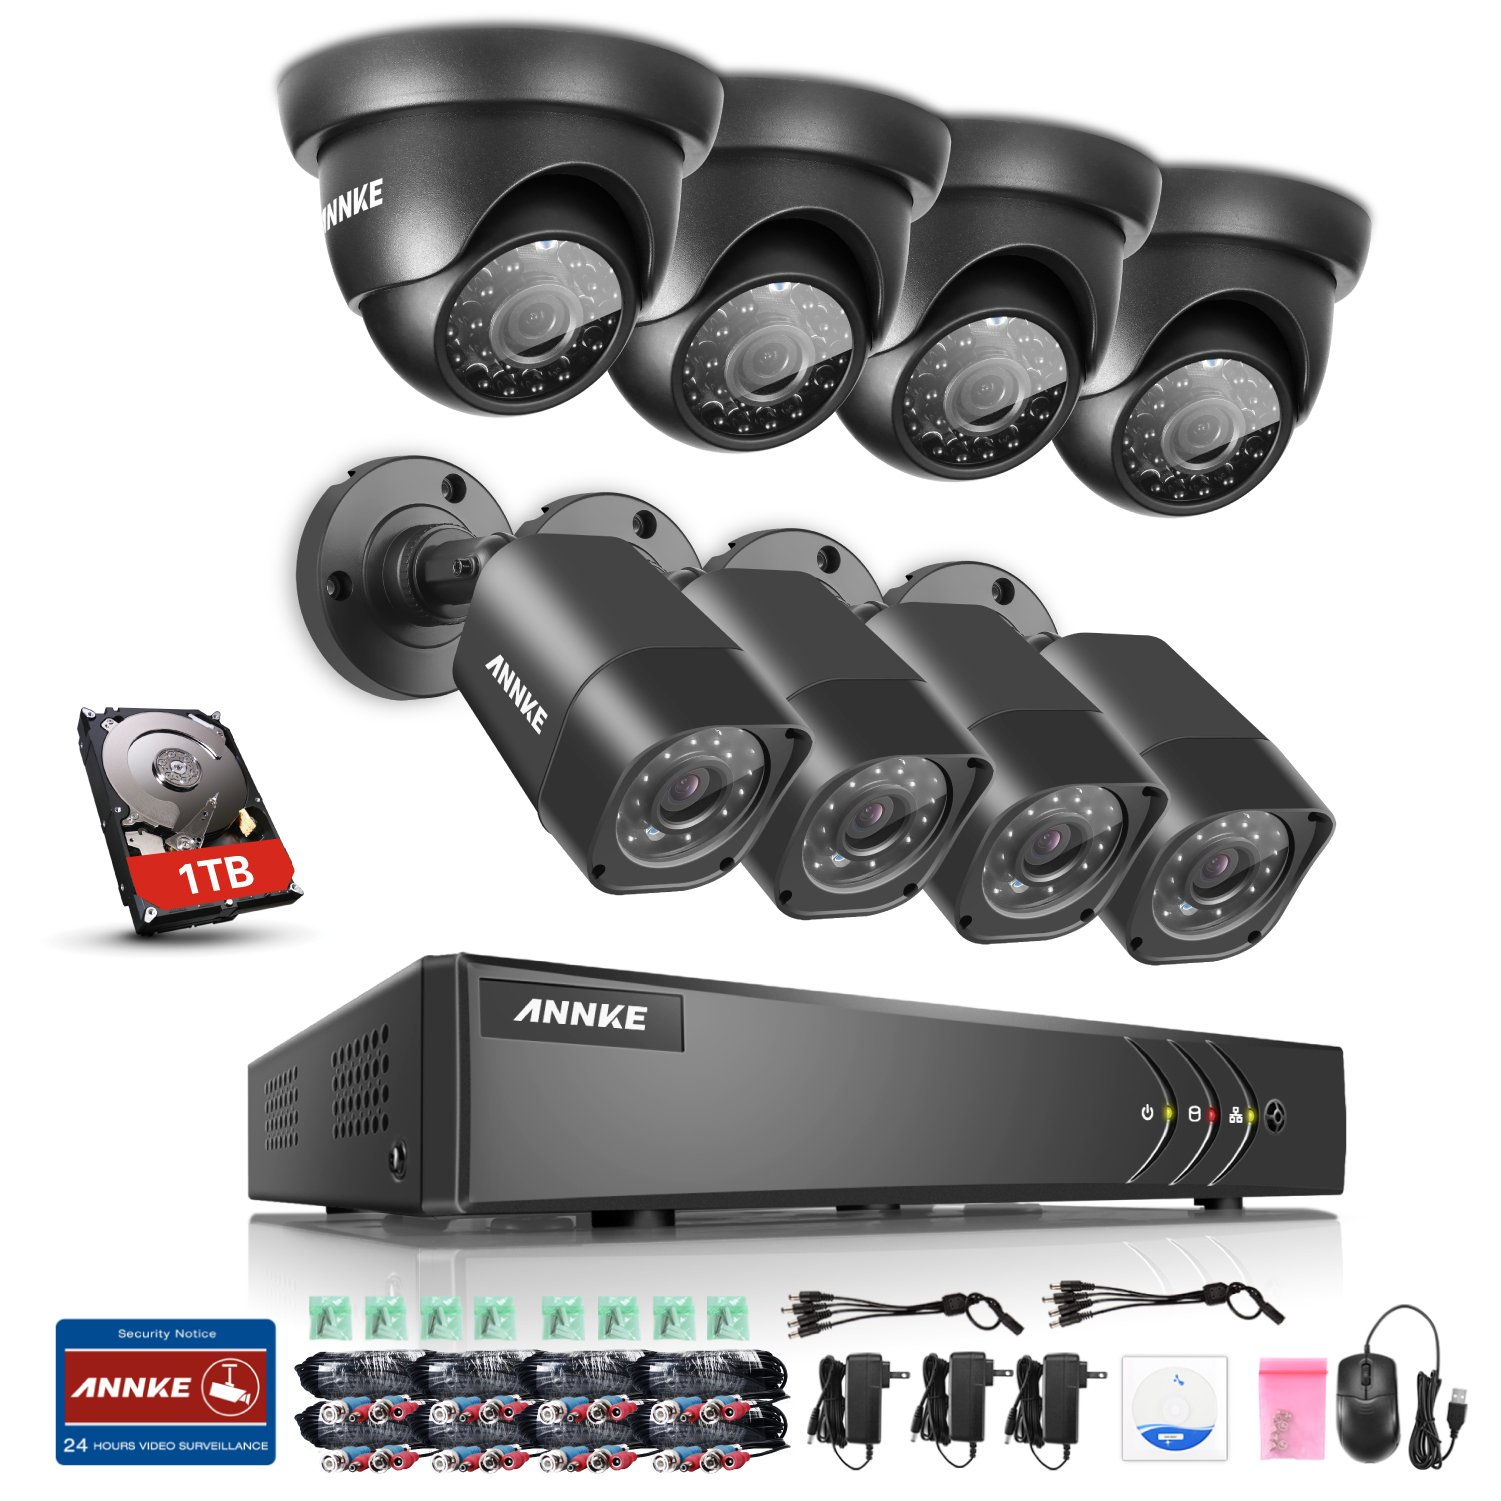 Annke 8CH TVI-720P DVR 1080P NVR Recorder with 1TB Hard Drive Included and (8)HD 1280tvl 1.0MP Weatherproof Security Cameras, Easy Remote Web / Mobile Access